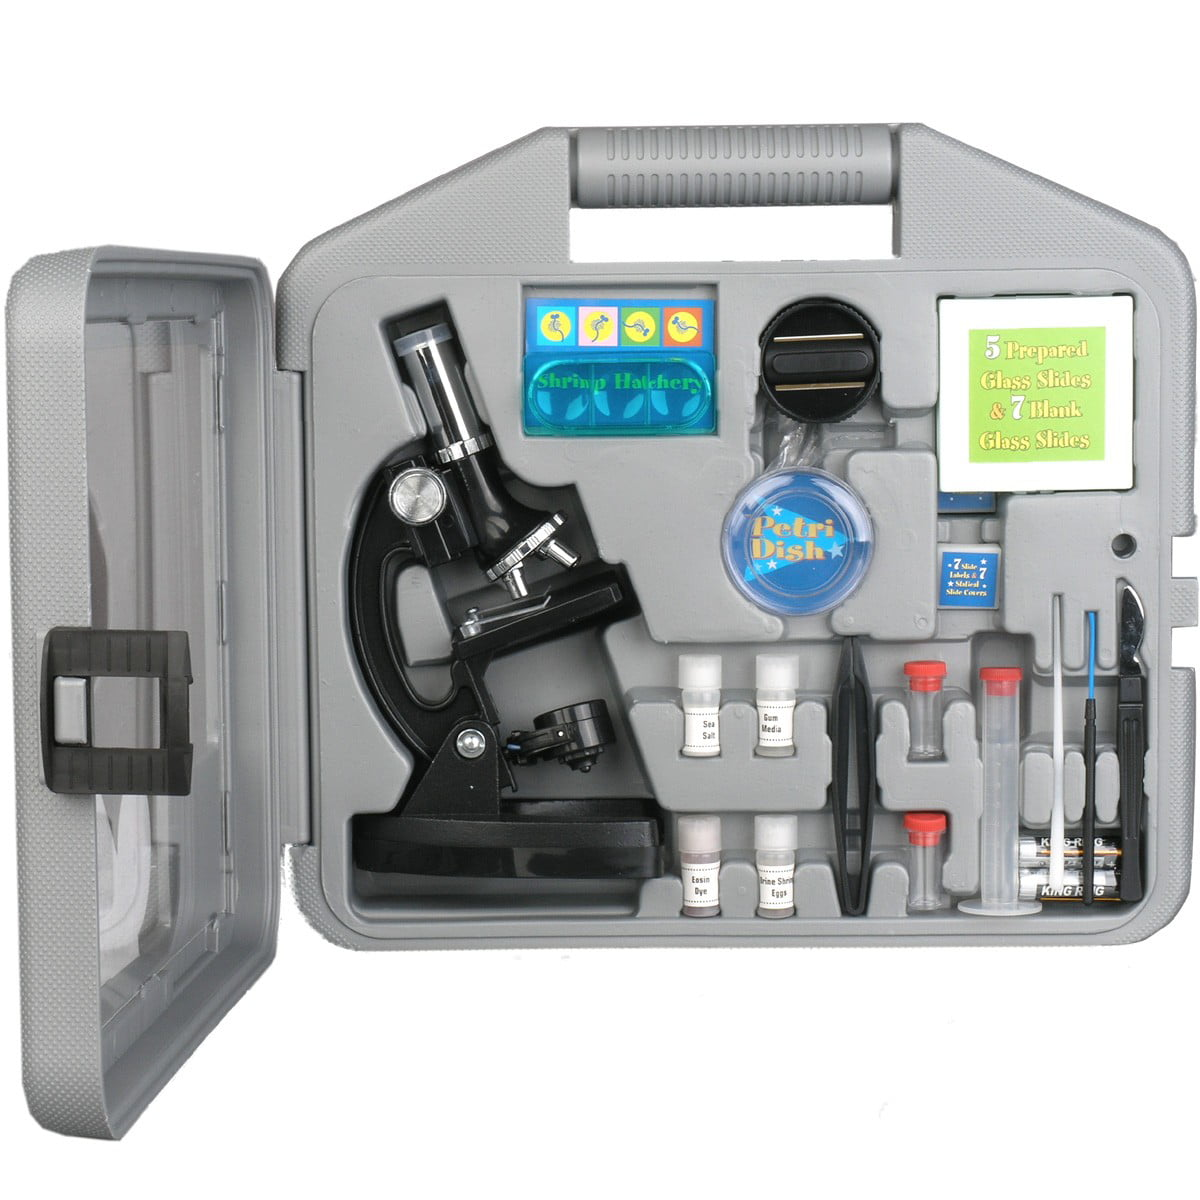 AMSCOPE-KIDS 120X-240X-300X-480X-600X-1200X Metal Arm Kids Compound Biological Microscope Kit by United Scope